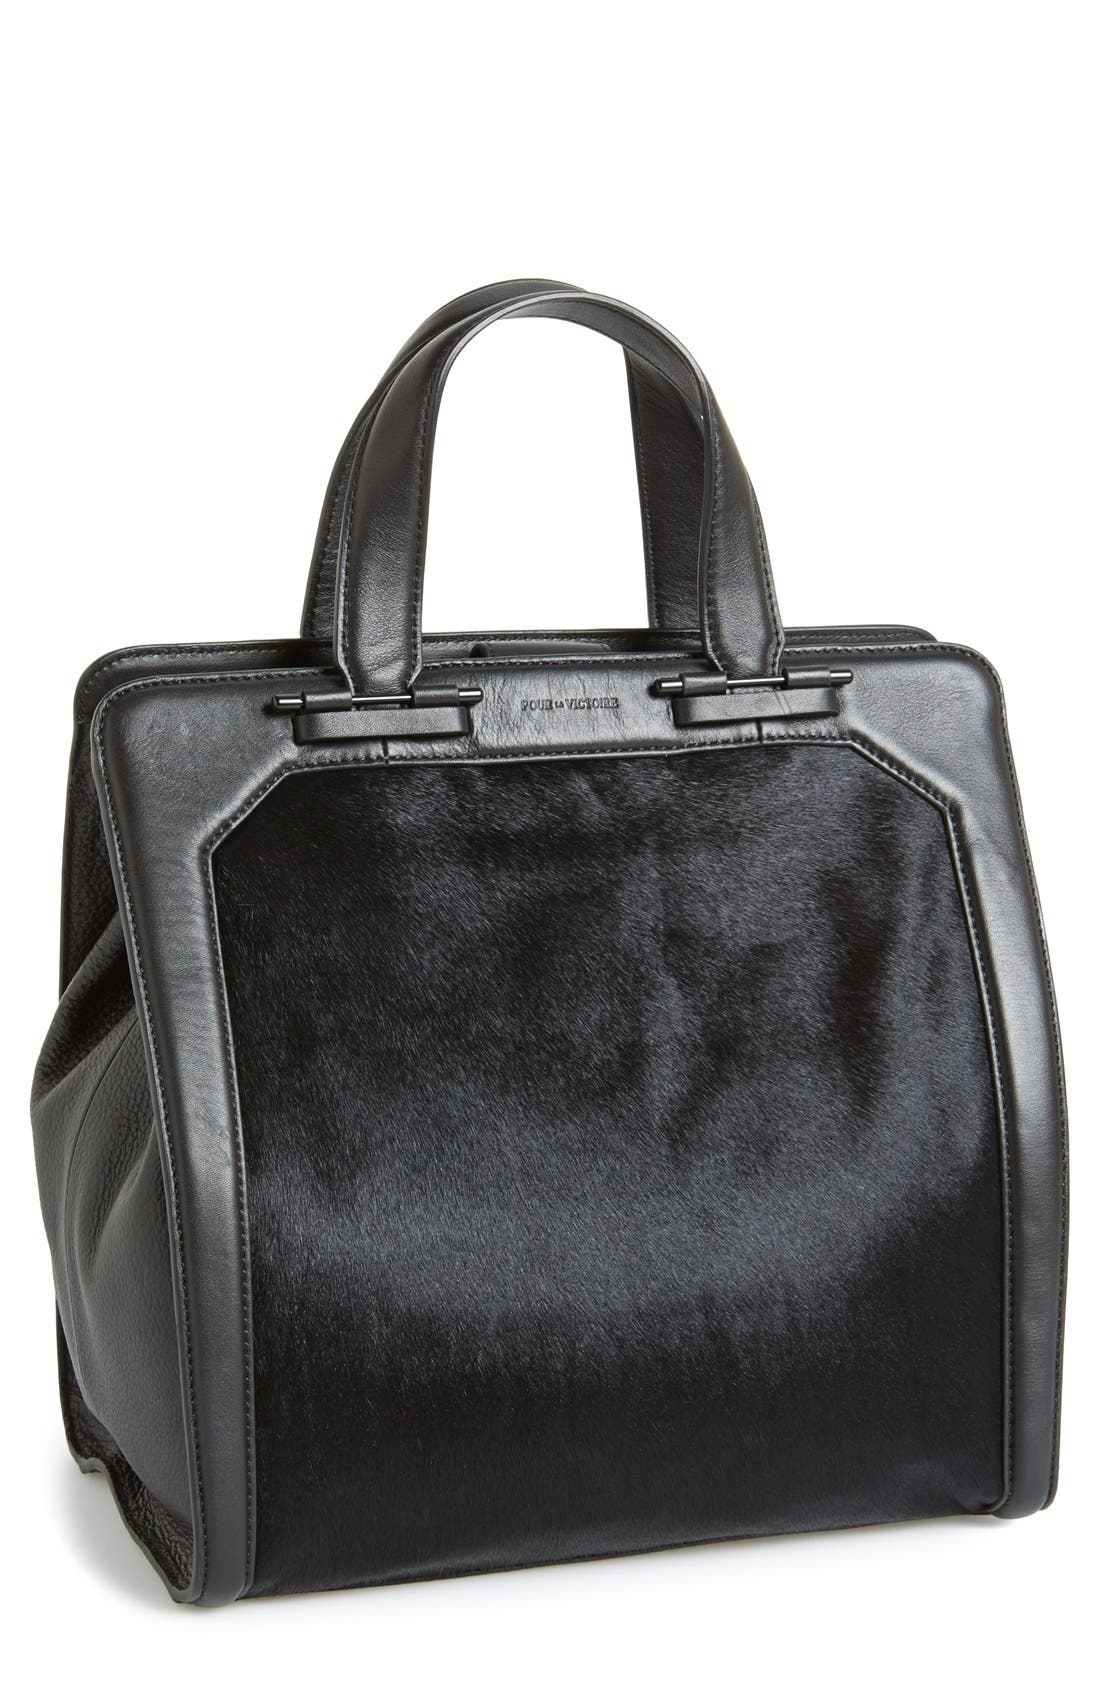 Alternate Image 1 Selected - Pour la Victoire 'Servant' Leather & Genuine Calf Hair Tote